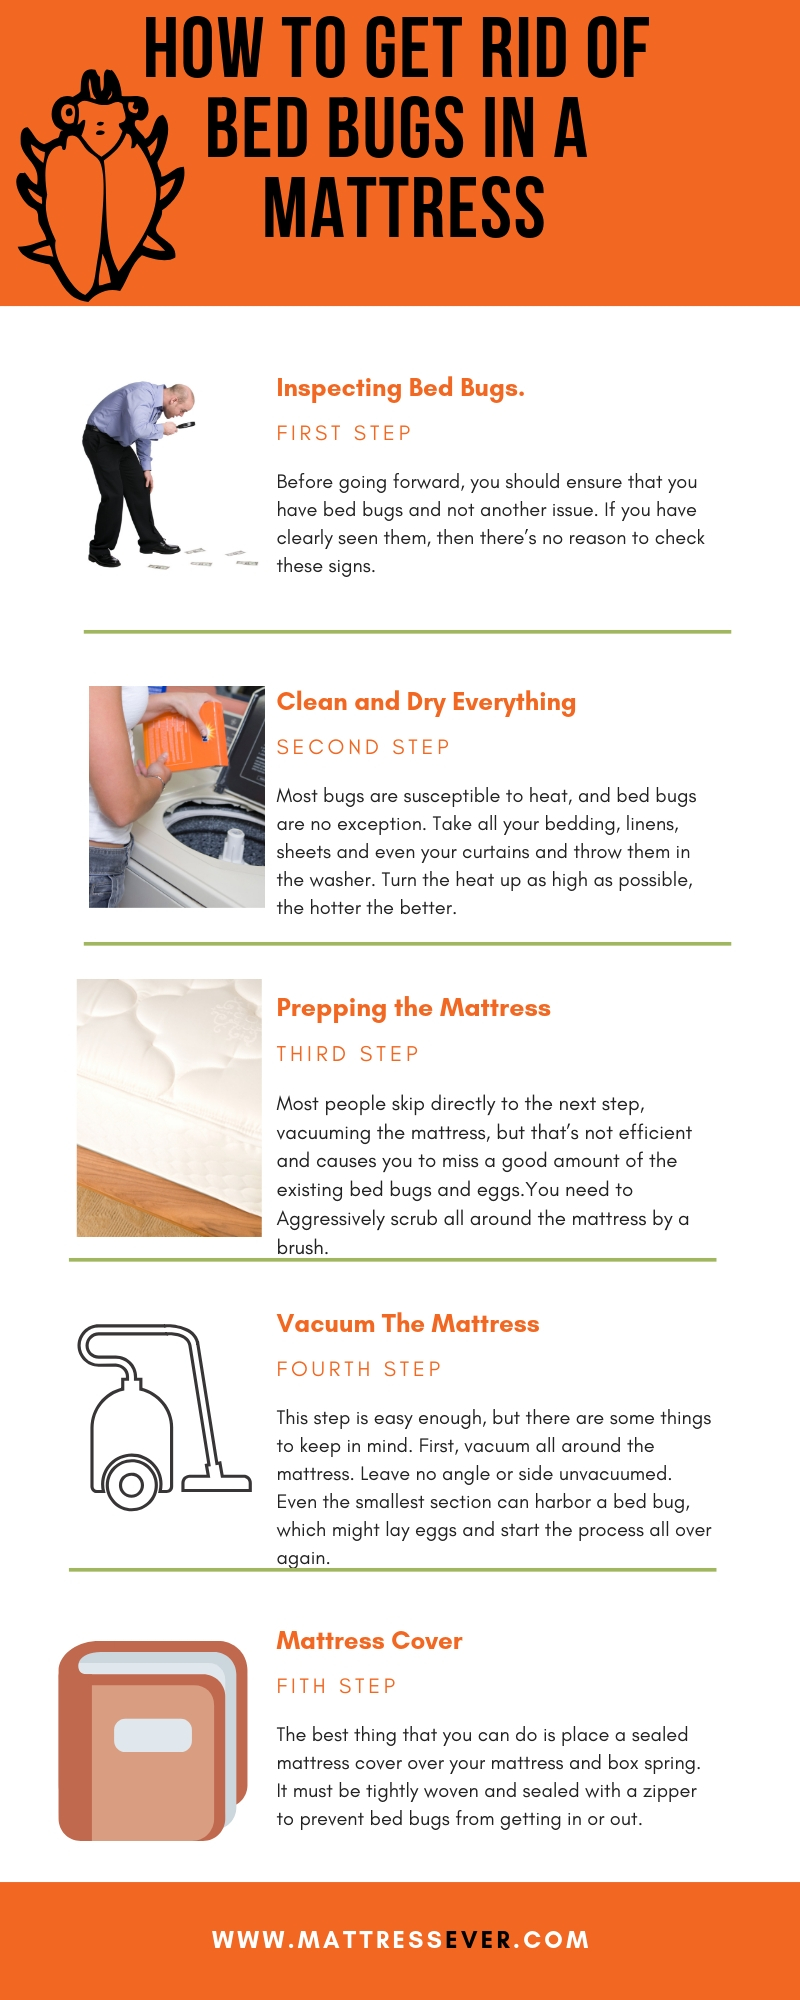 How to Get Rid of Bed Bugs in a Mattress Info graphics